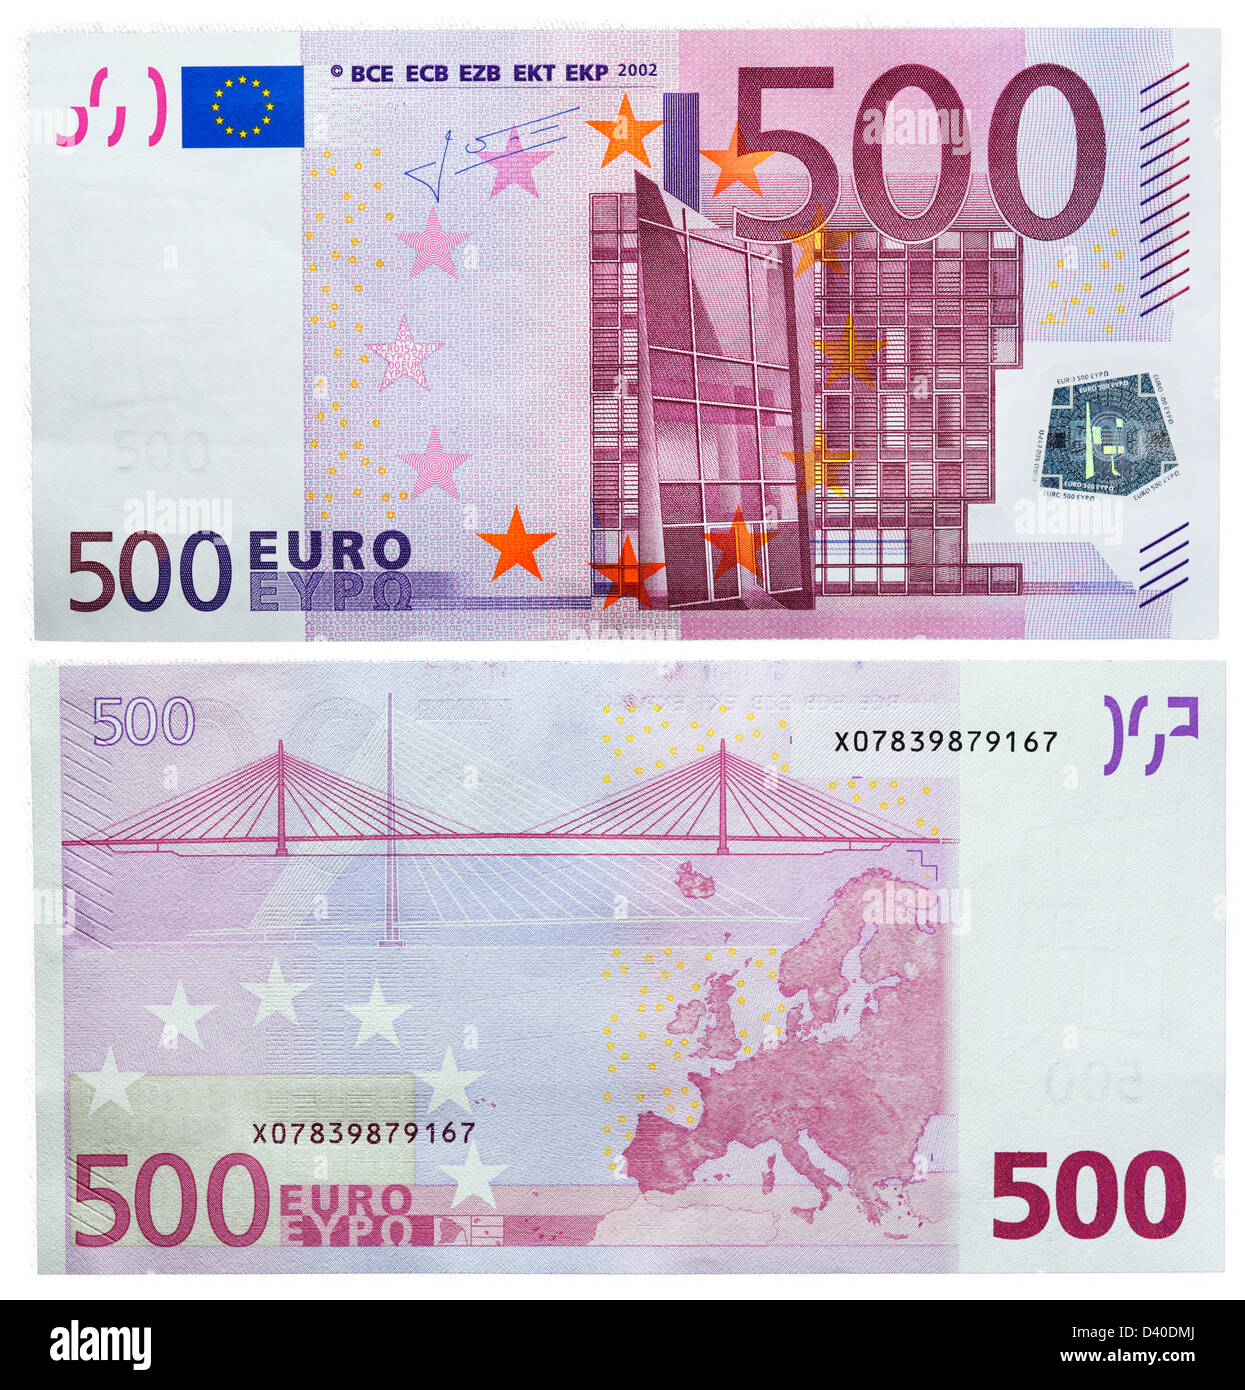 500 Euro banknote, Modern architecture and bridge, 2002 - Stock Image